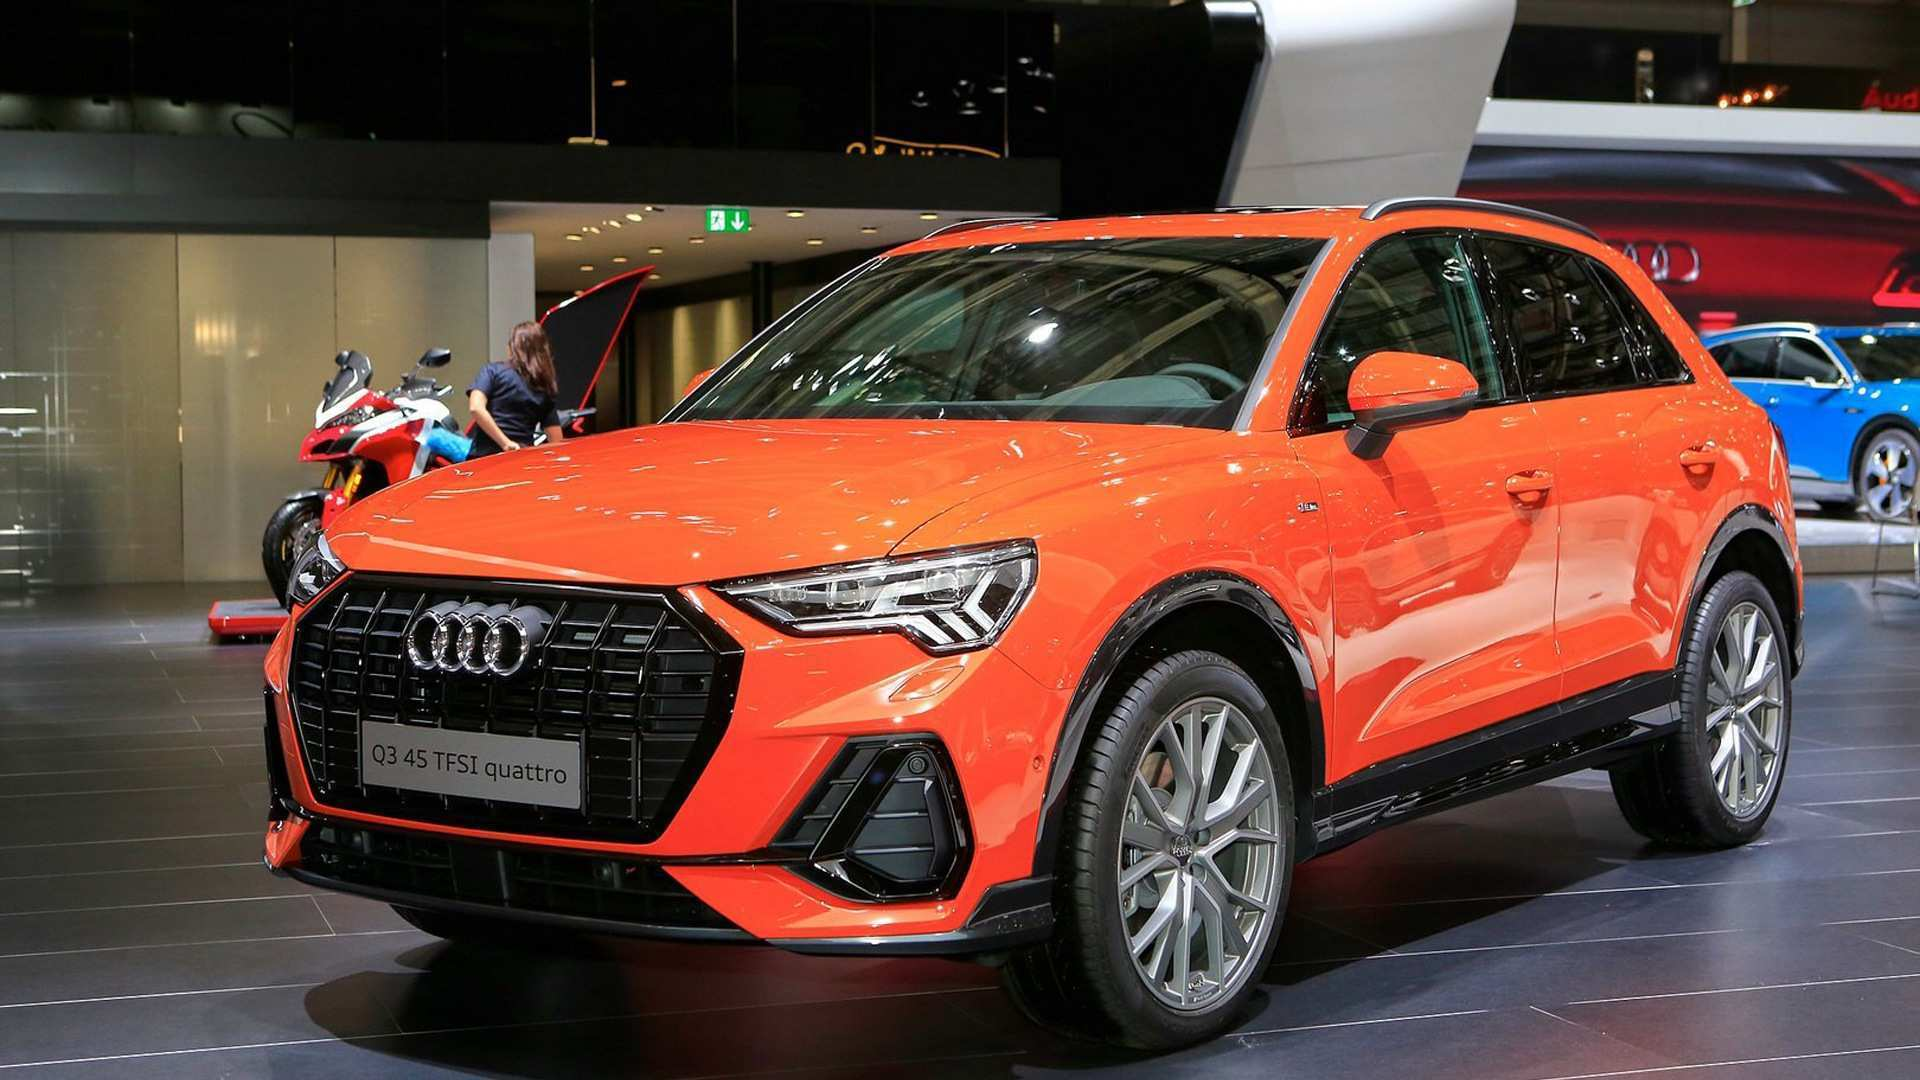 22 Concept of 2019 Audi Q3 Dimensions Exterior and Interior by 2019 Audi Q3 Dimensions